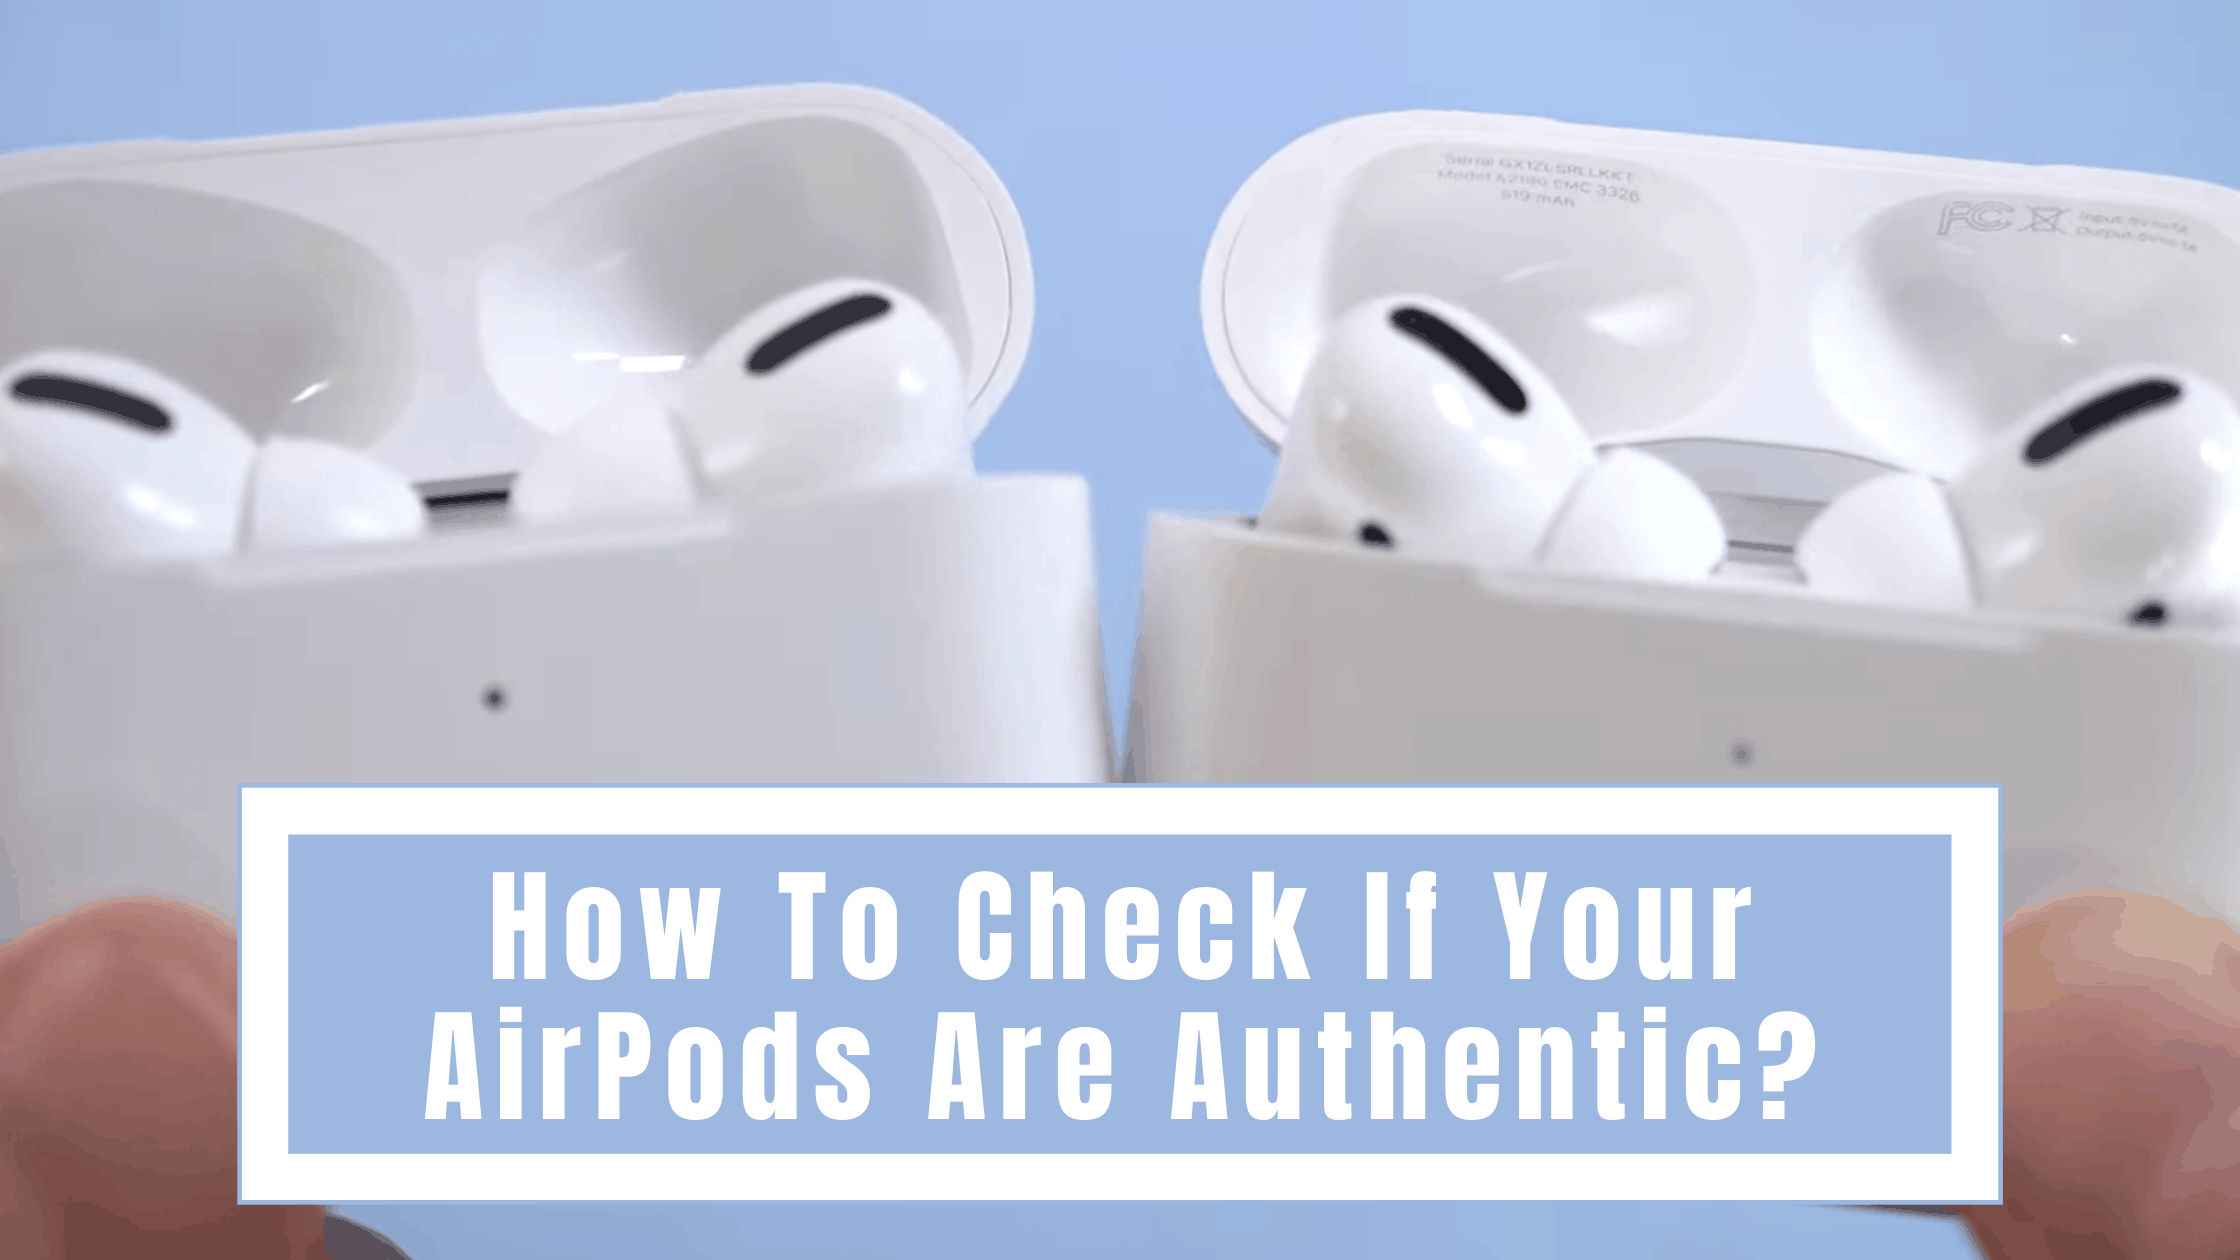 How To Check If Your AirPods Are Authentic